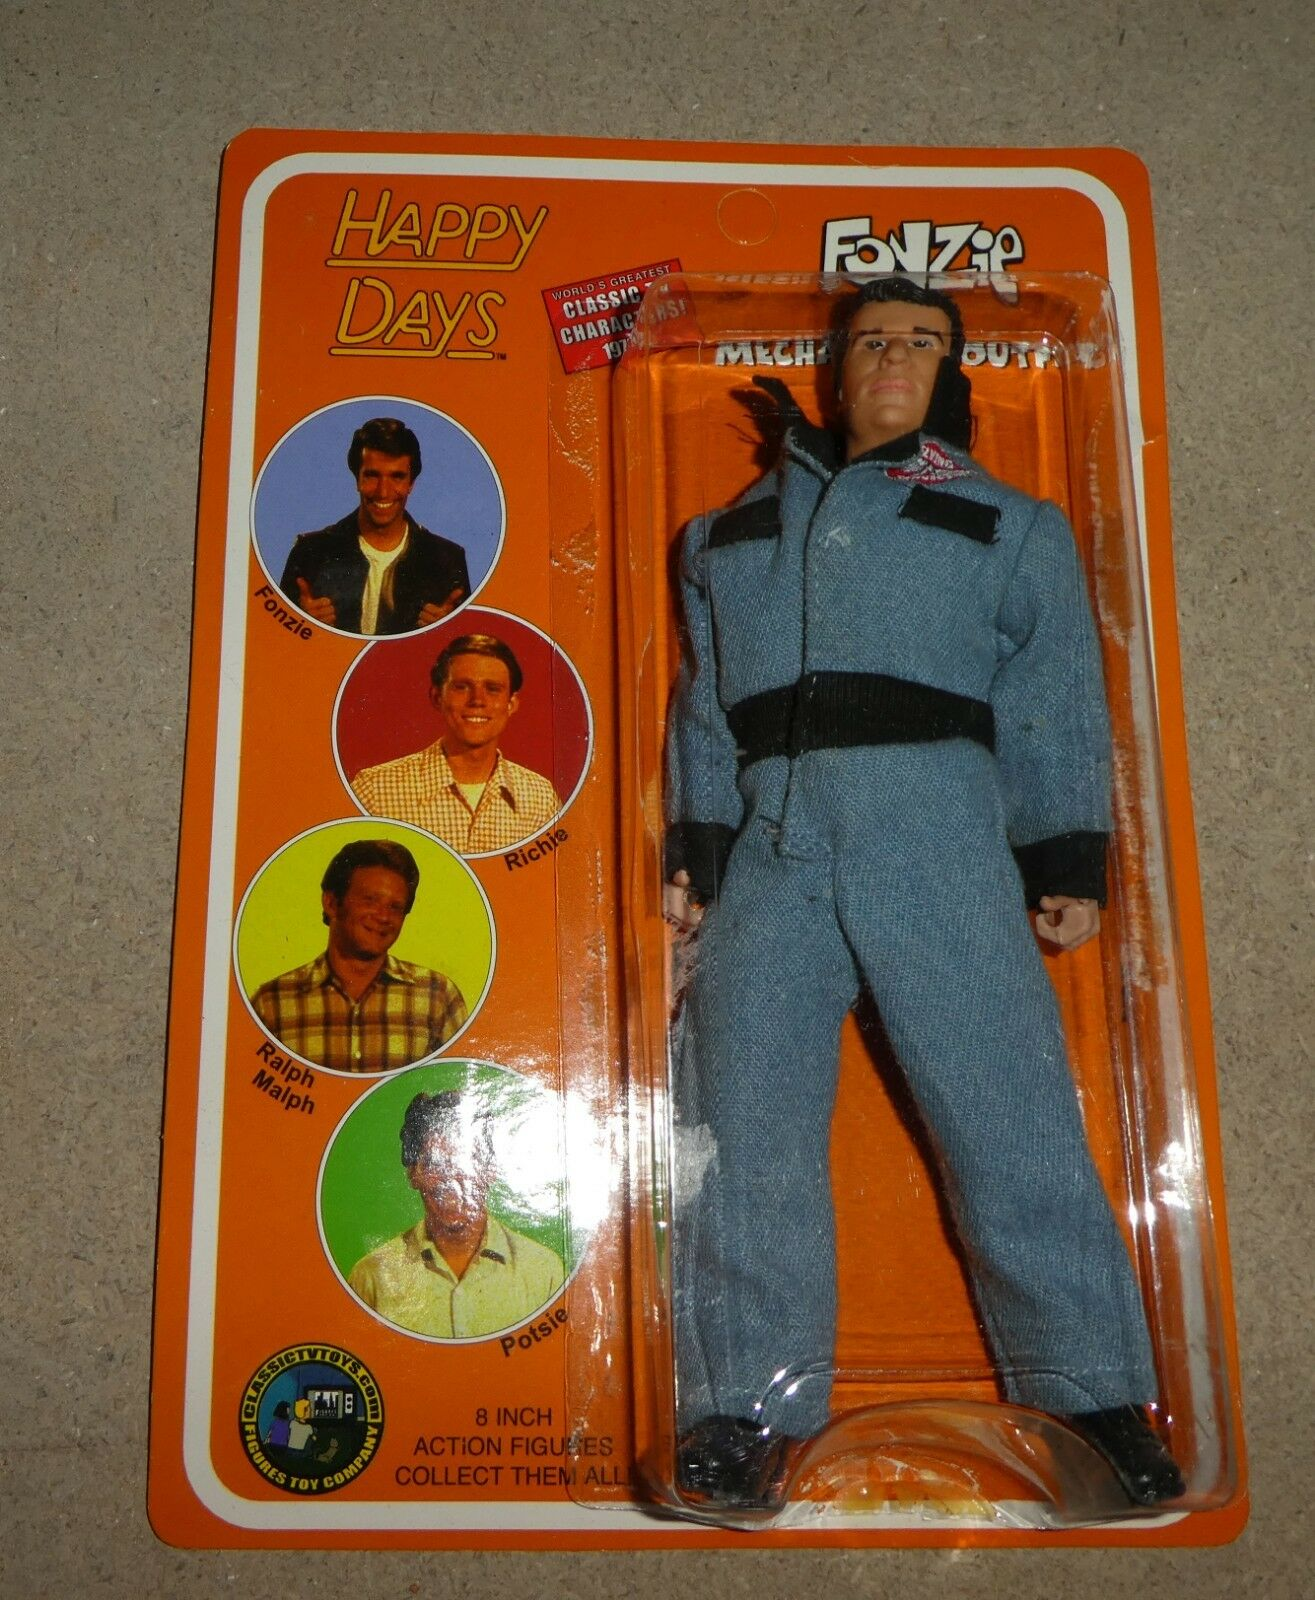 Happy Days Mego Style The Fonz Figure Figure Figure toy co Brand new eonzie 56b2d0